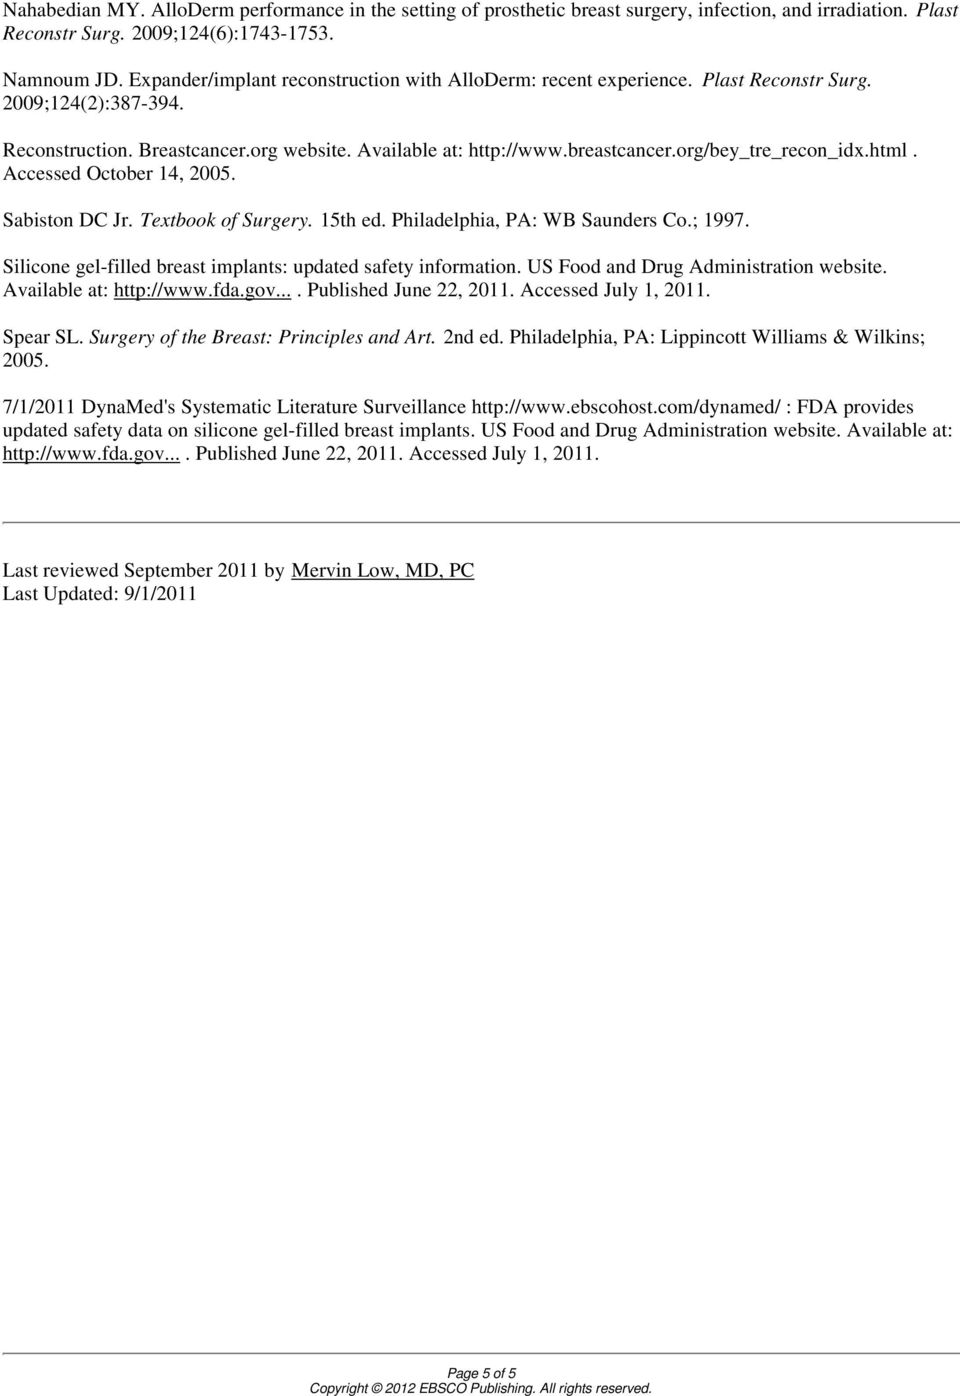 org/bey_tre_recon_idx.html. Accessed October 14, 2005. Sabiston DC Jr. Textbook of Surgery. 15th ed. Philadelphia, PA: WB Saunders Co.; 1997.